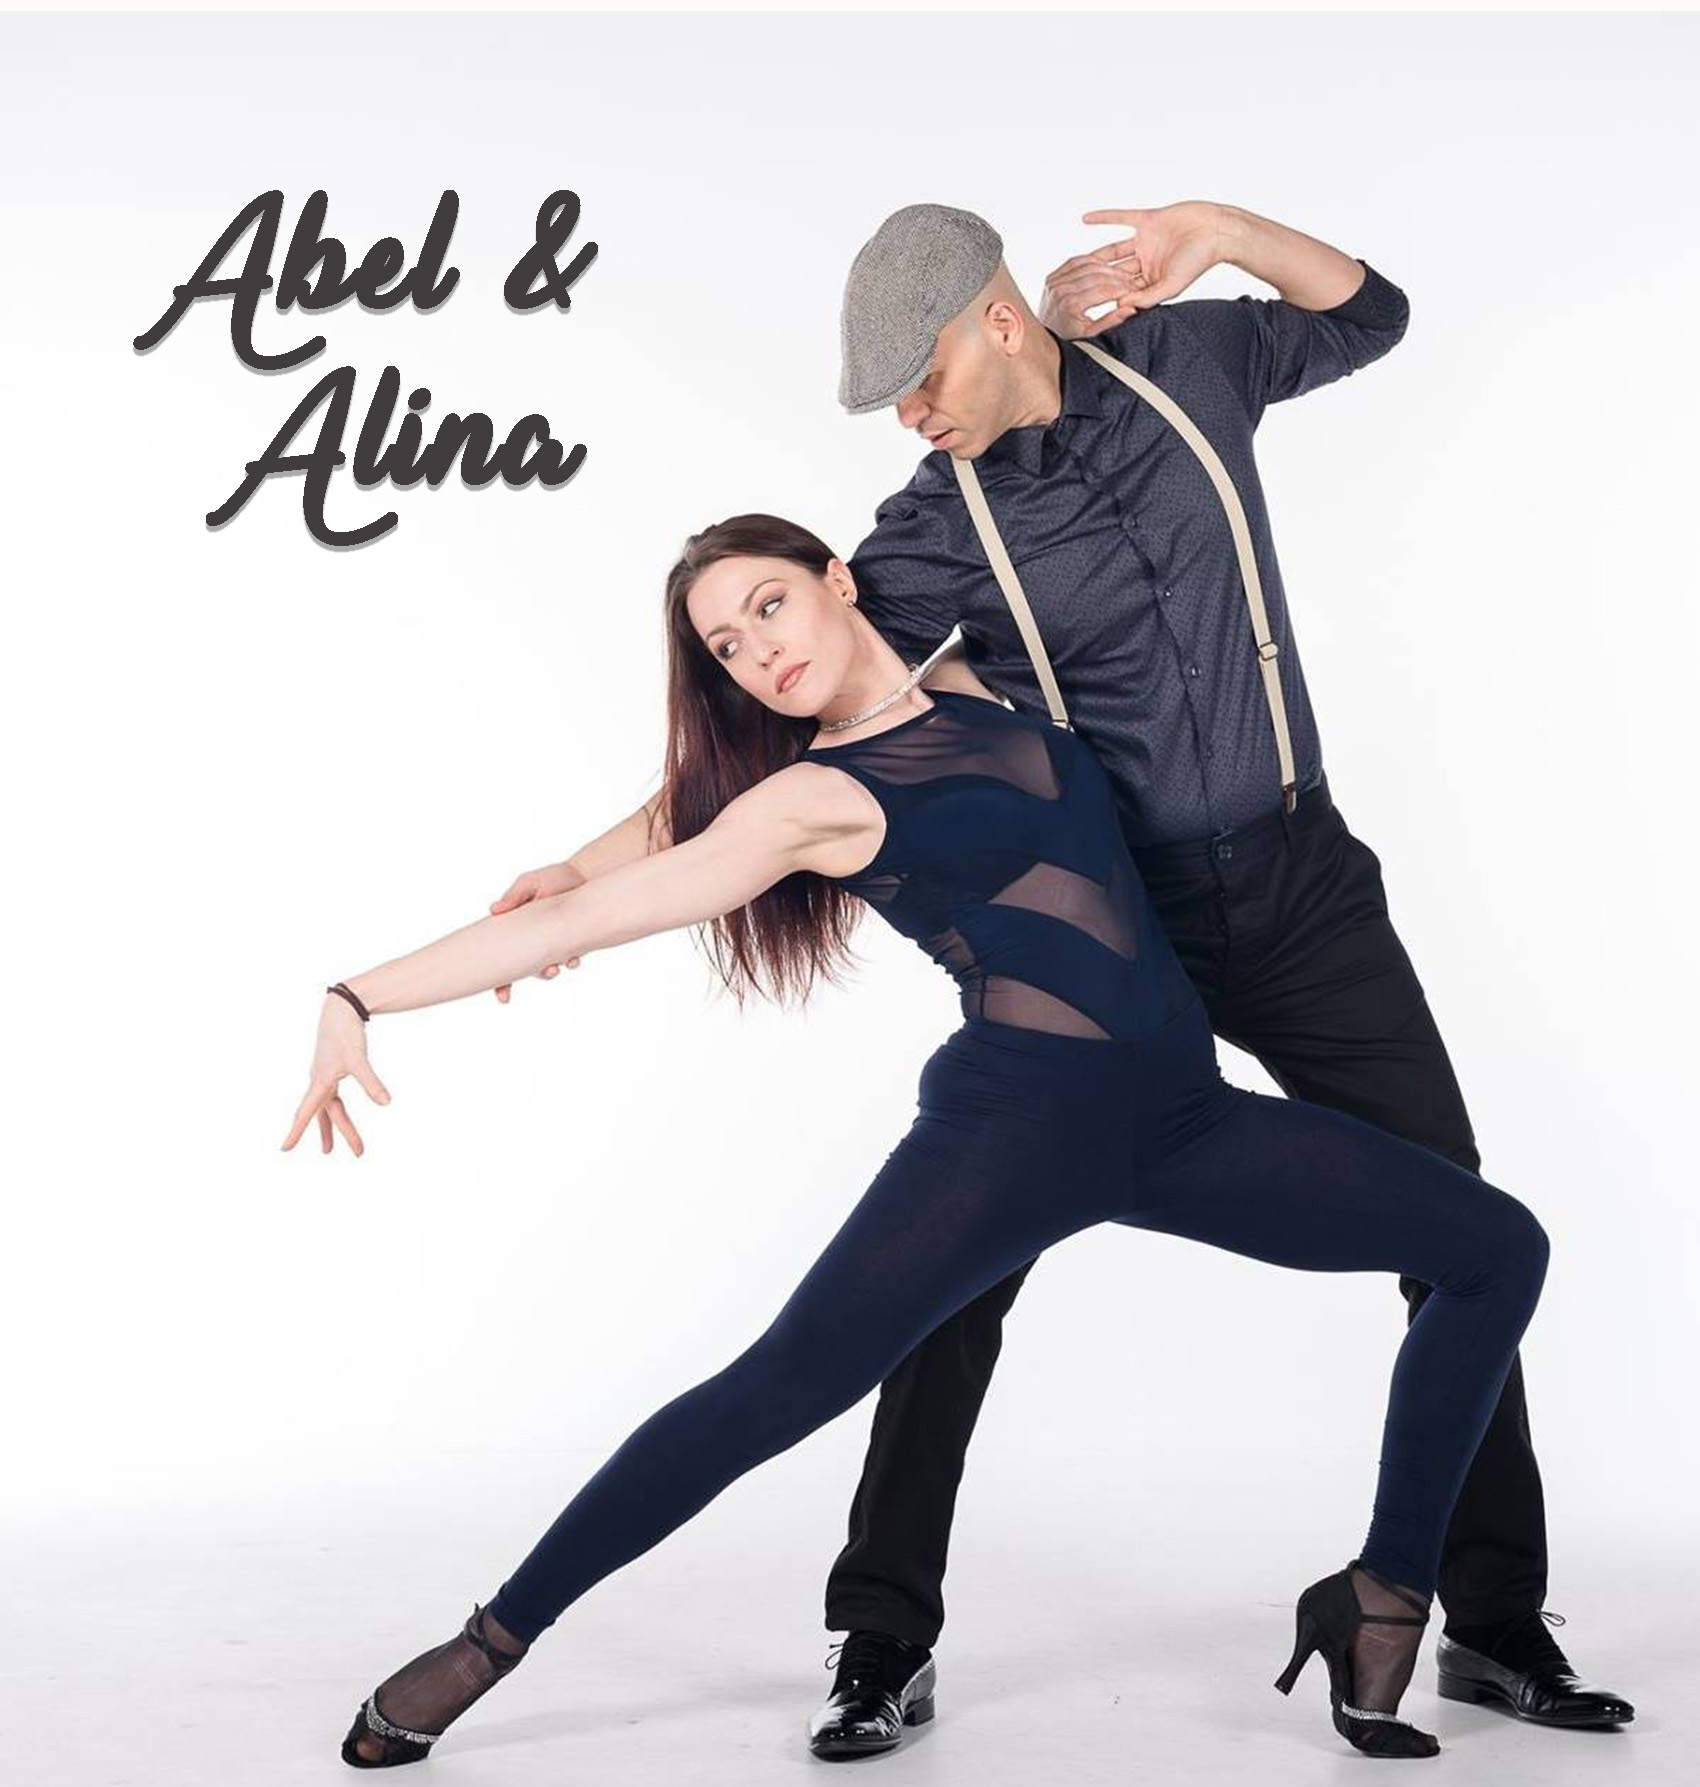 CUBA/LITHUANIA  Alina and Abel are the directors of Dublin Salsa Academy. Together they combine almost 20 years of music, dance and teaching experience. Over the years and across various art forms the knowledge collected on leading techniques have shaped their approach on delivering classes with special focus on detail and 'common sense' approach to dancing.  The classes are a combination of musicality, lead and dance techniques challenging students to see the dance as an every day task, making them confident and unique dancers bringing out their own personality.  Where to find us?   www.dublinsalsacademy.com